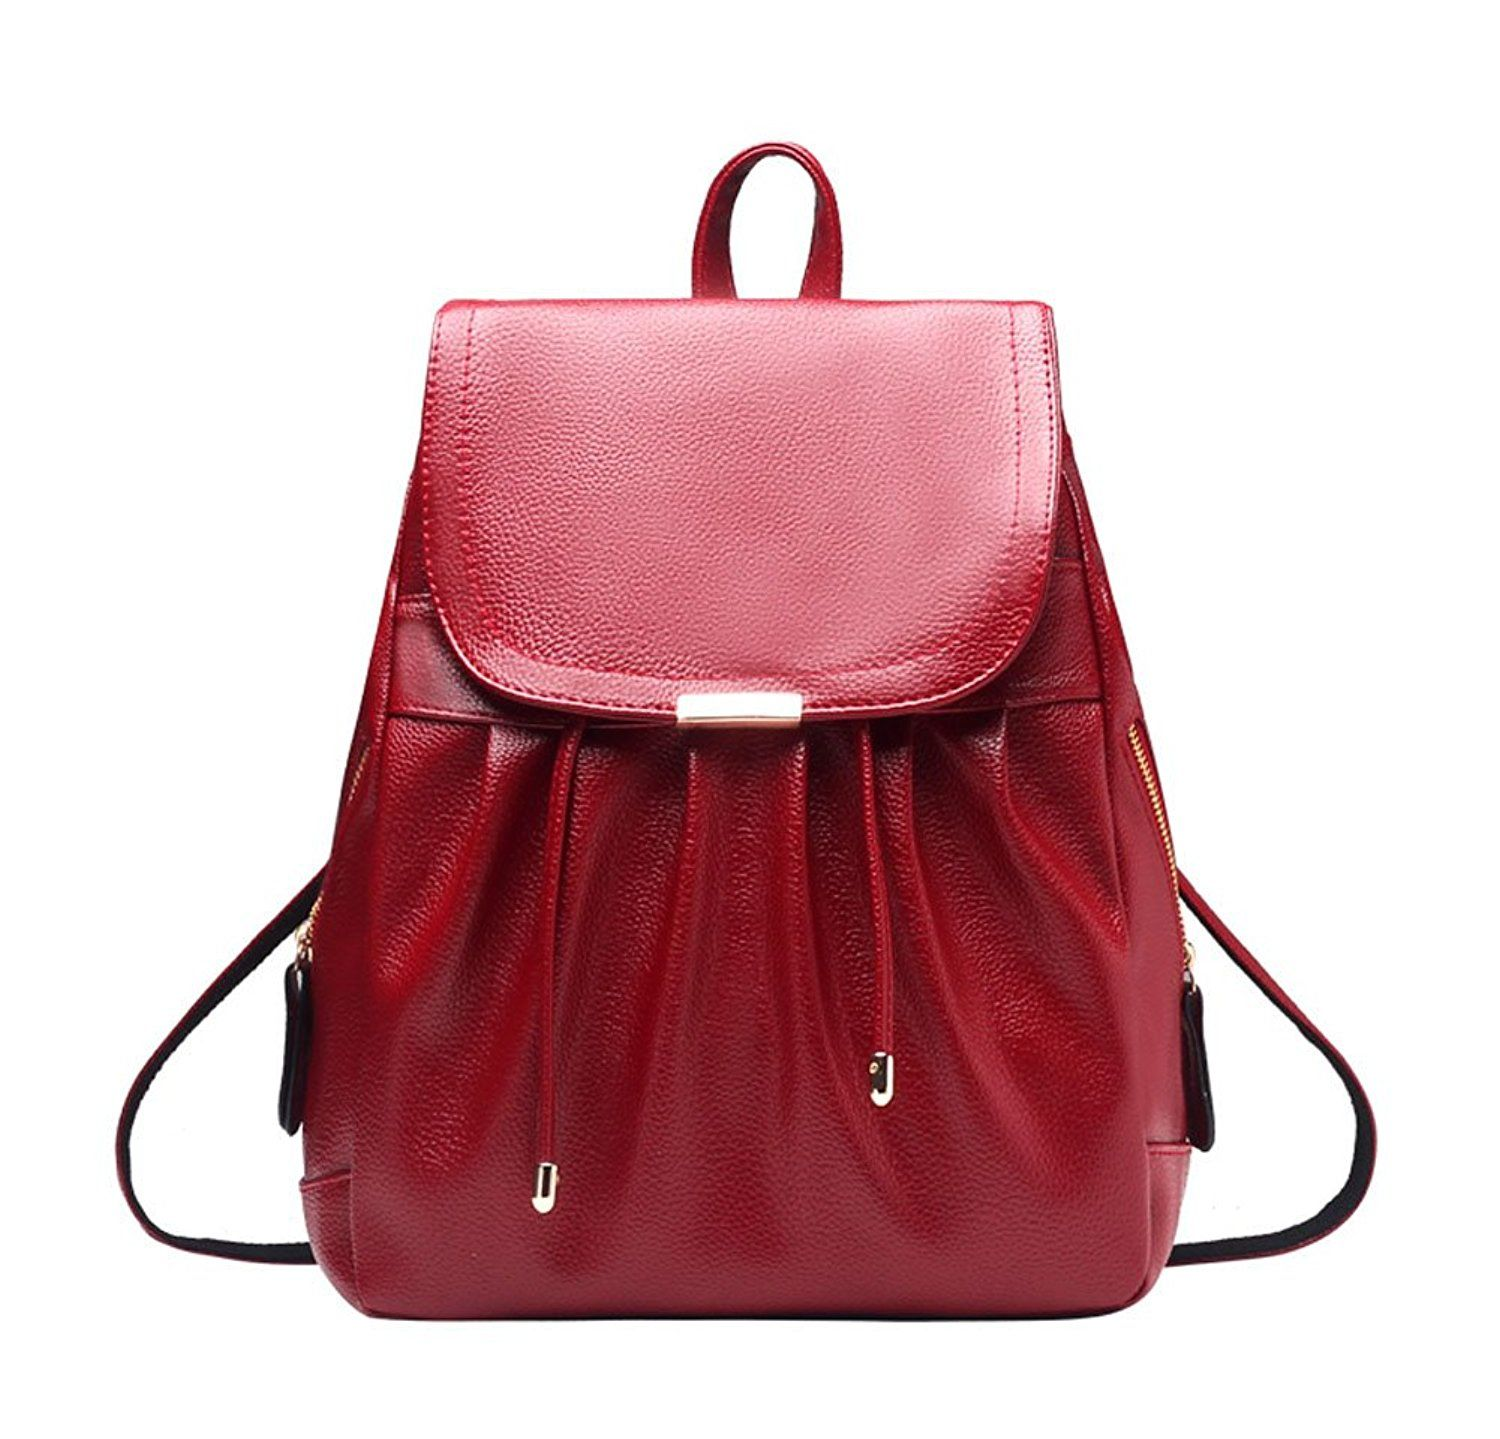 shelian outdoor cool leather backpacks purses for women college